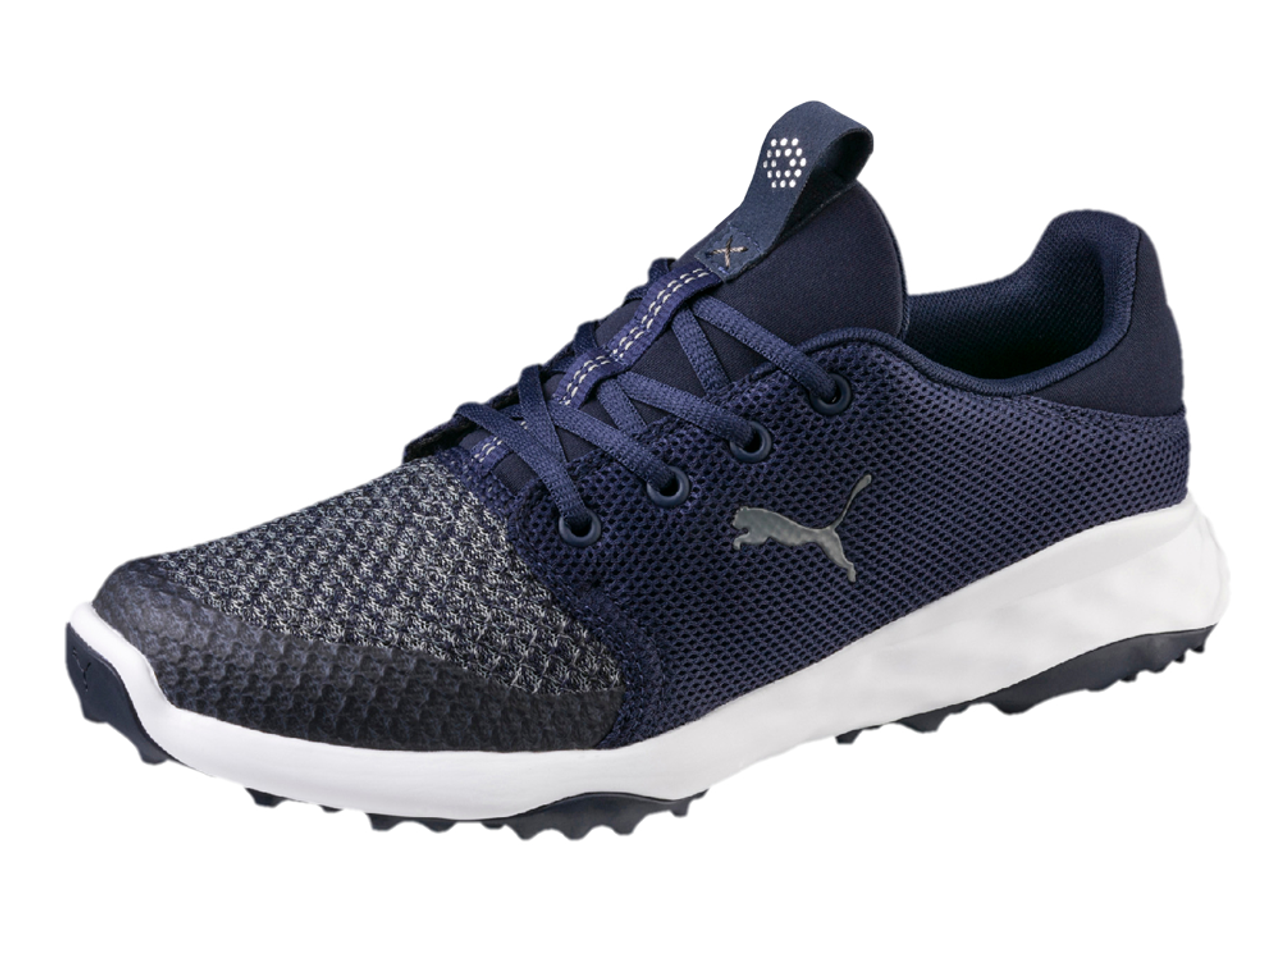 Puma Grip Fusion Sport Golf Shoes Peacoat